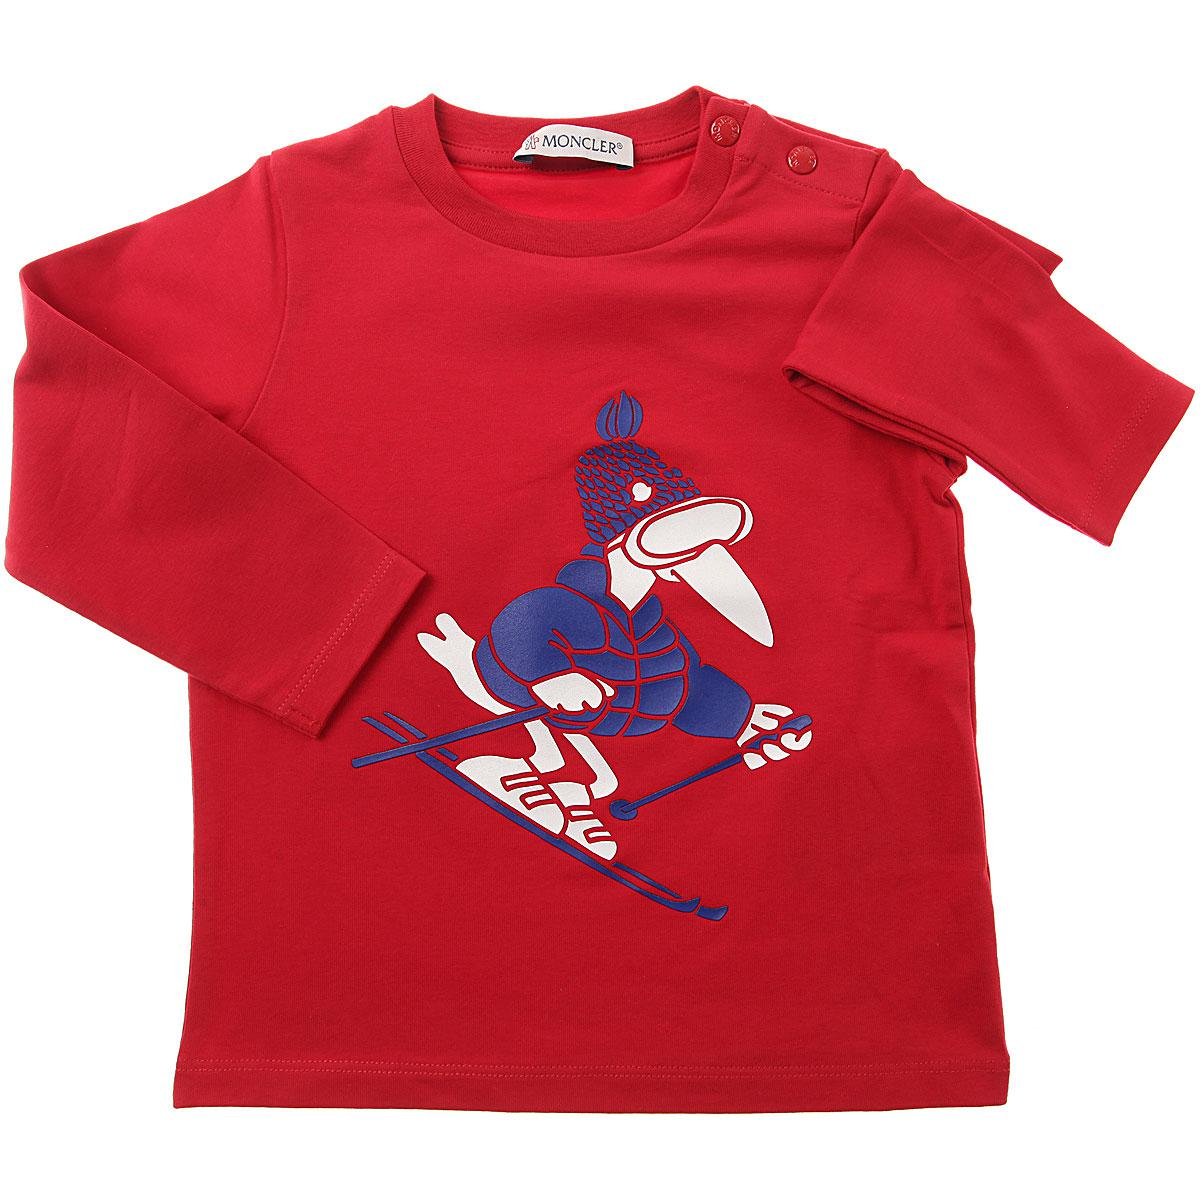 Moncler T In Lyst Men Boys Shirt For Red Baby ZqxzOFf